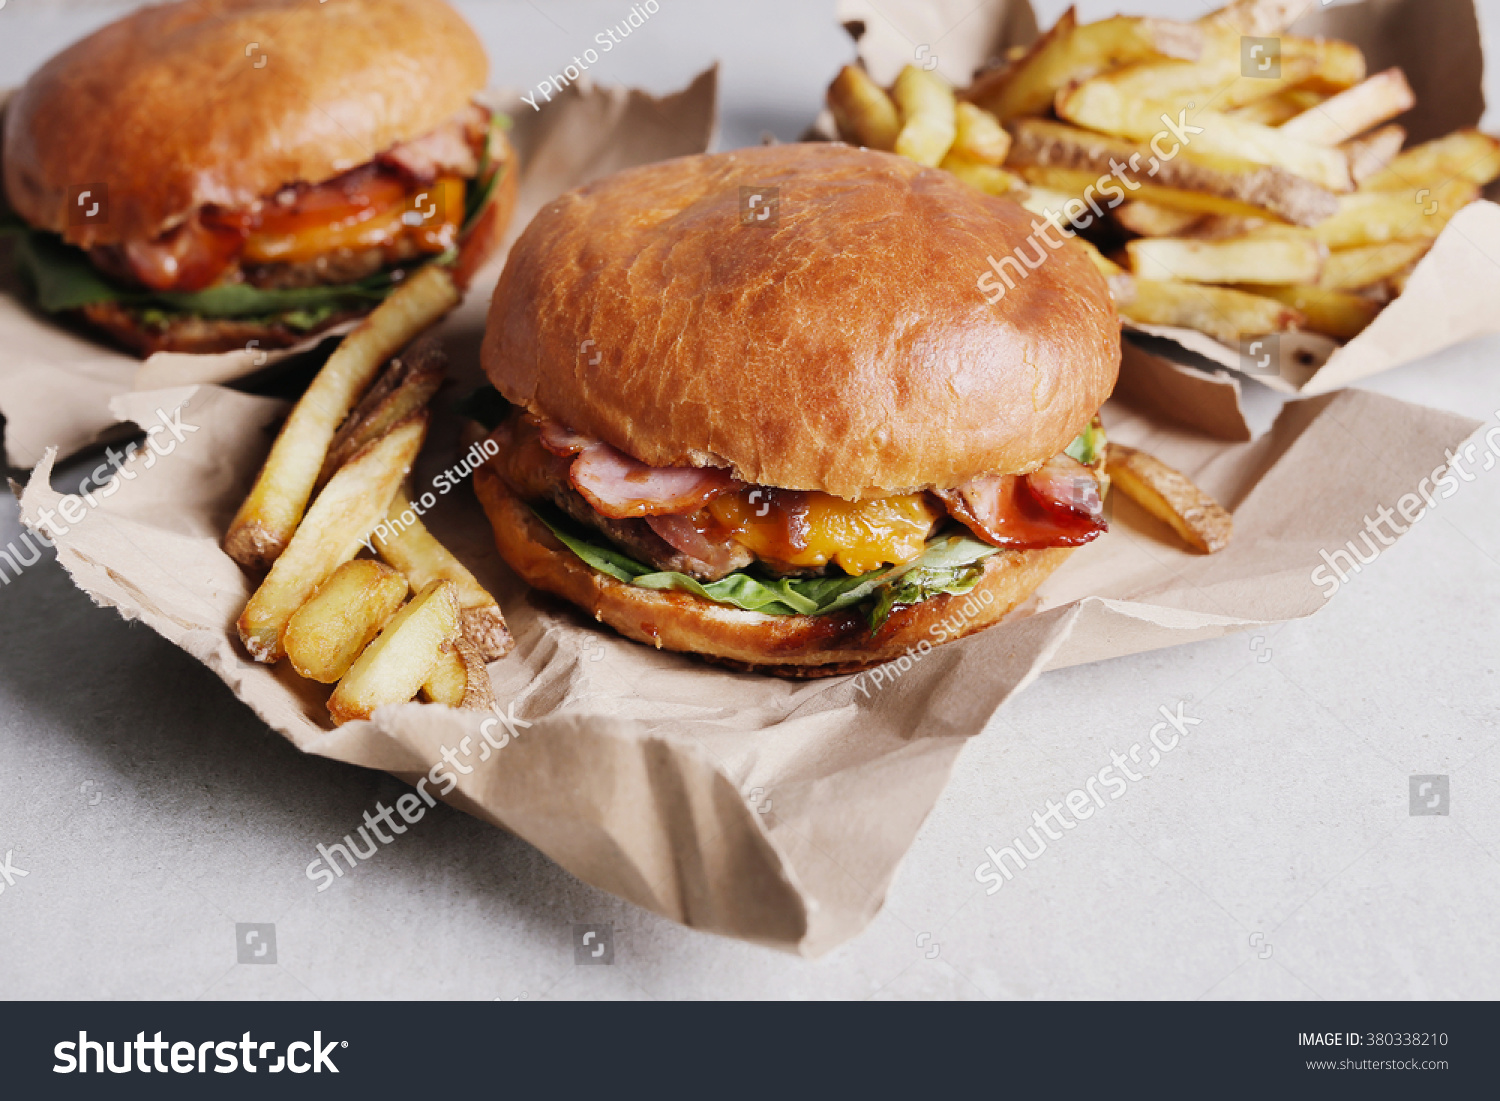 Delicious burger on table stock photo 380338210 shutterstock for Table burger